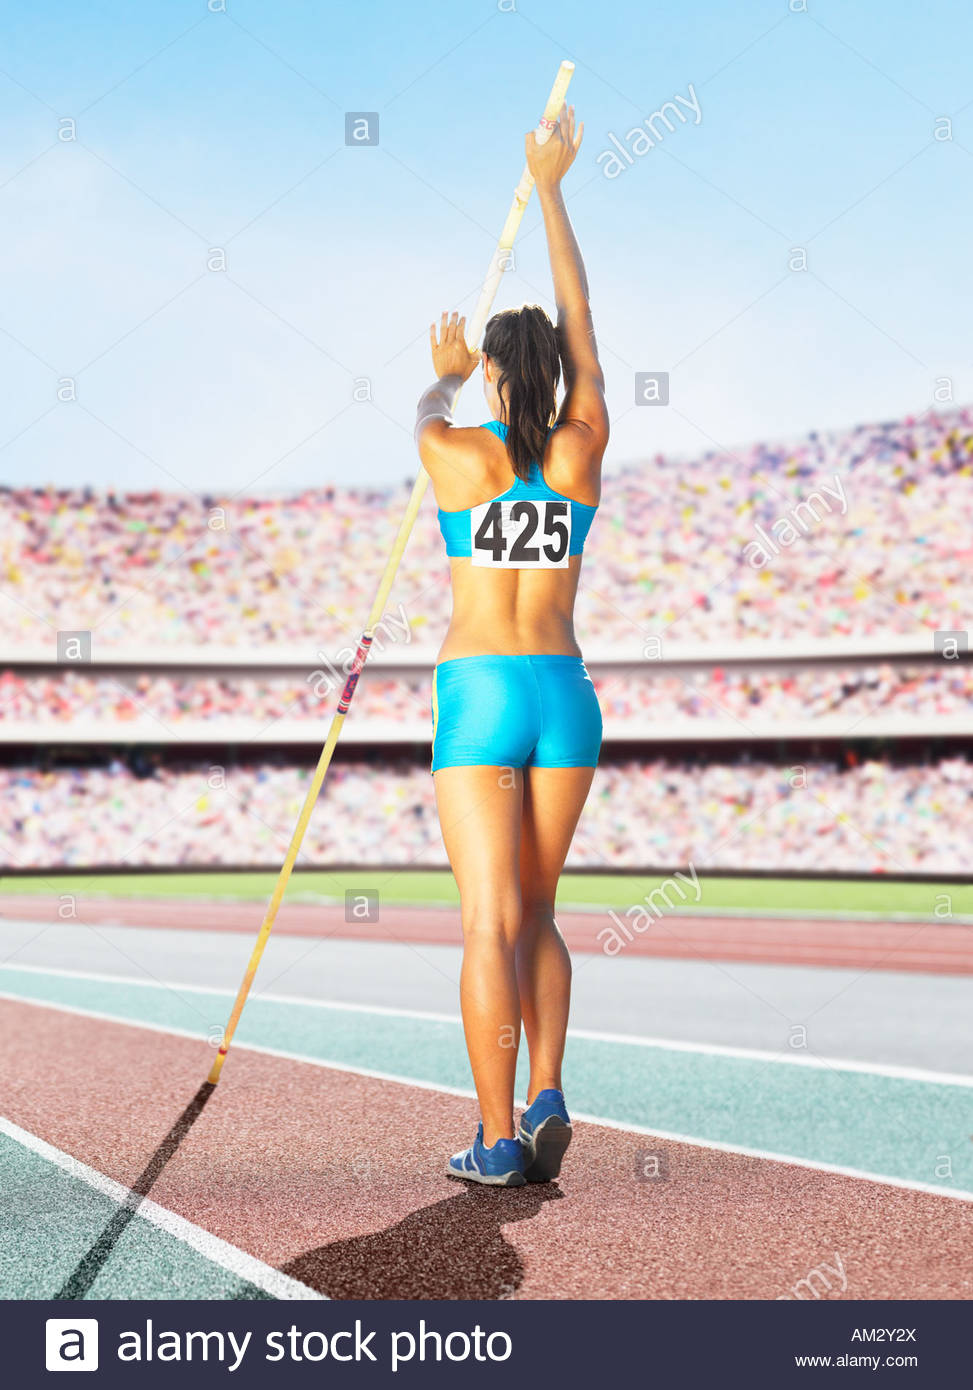 Athlete pole vaulting in an arena - Stock Image